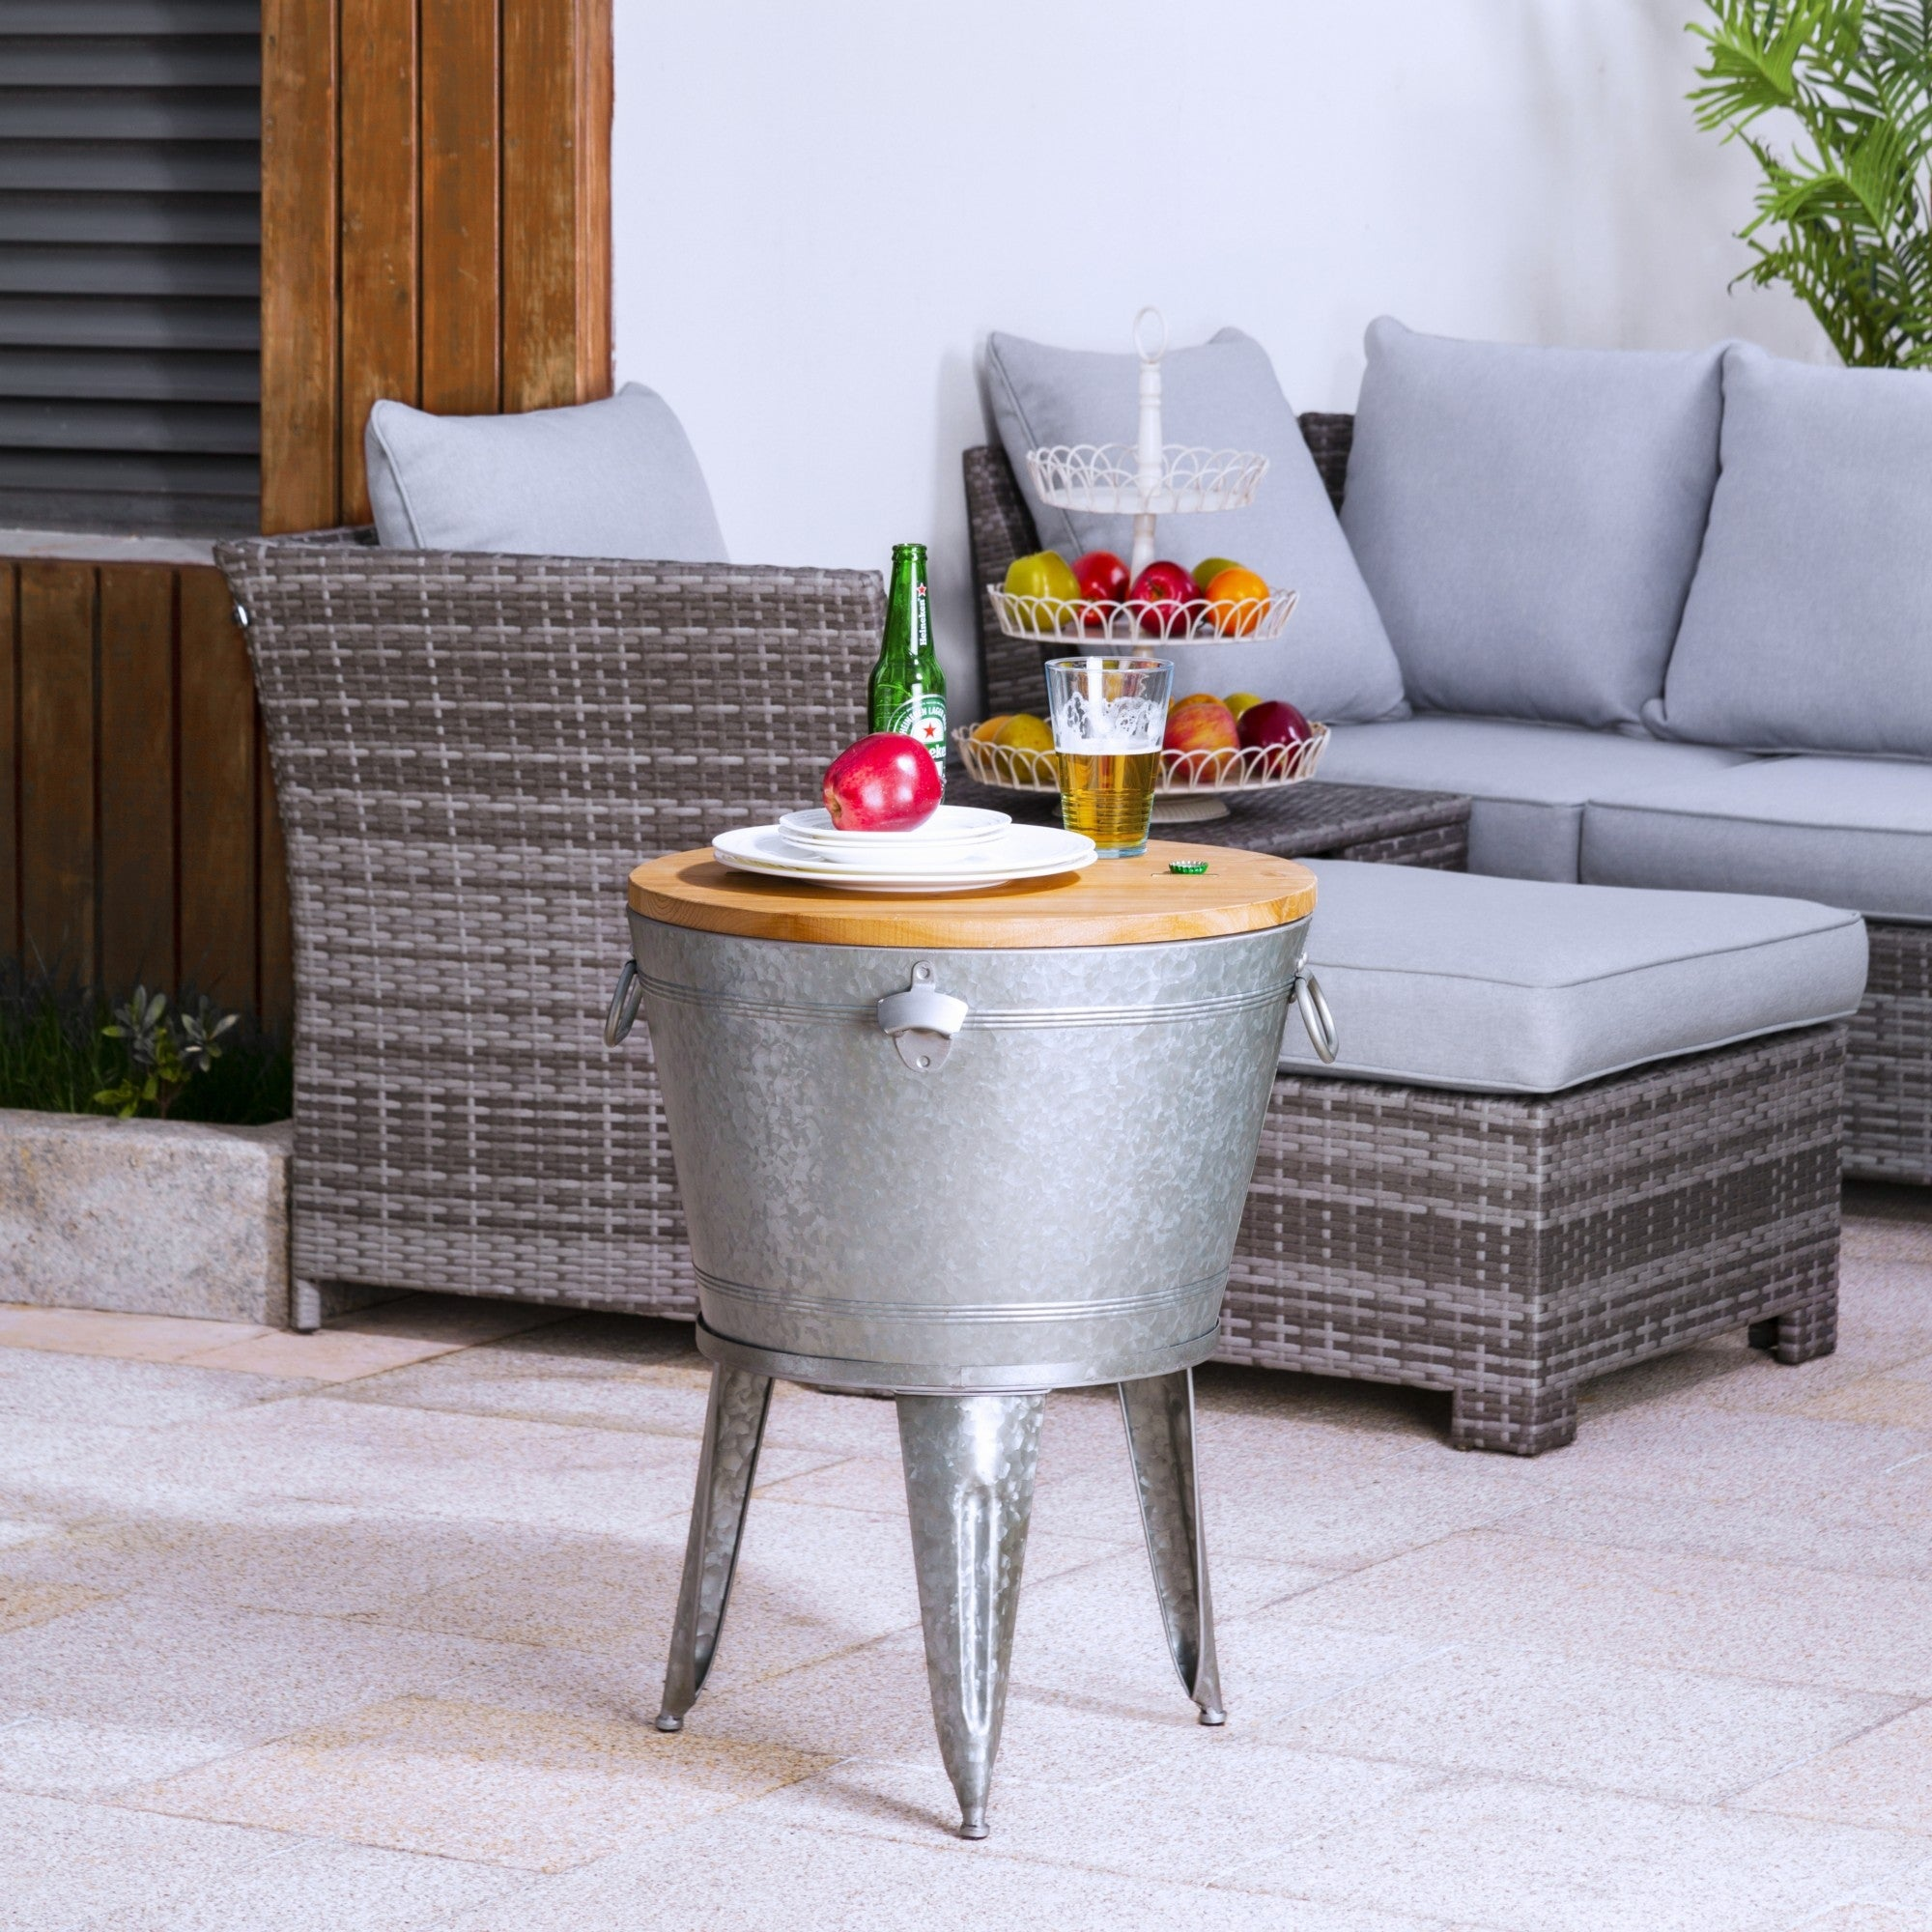 Glitzhome 26 H Galvanized Beverage Tub Metal Stand Accent Table 2 X 2 6 On Sale Overstock 30883489